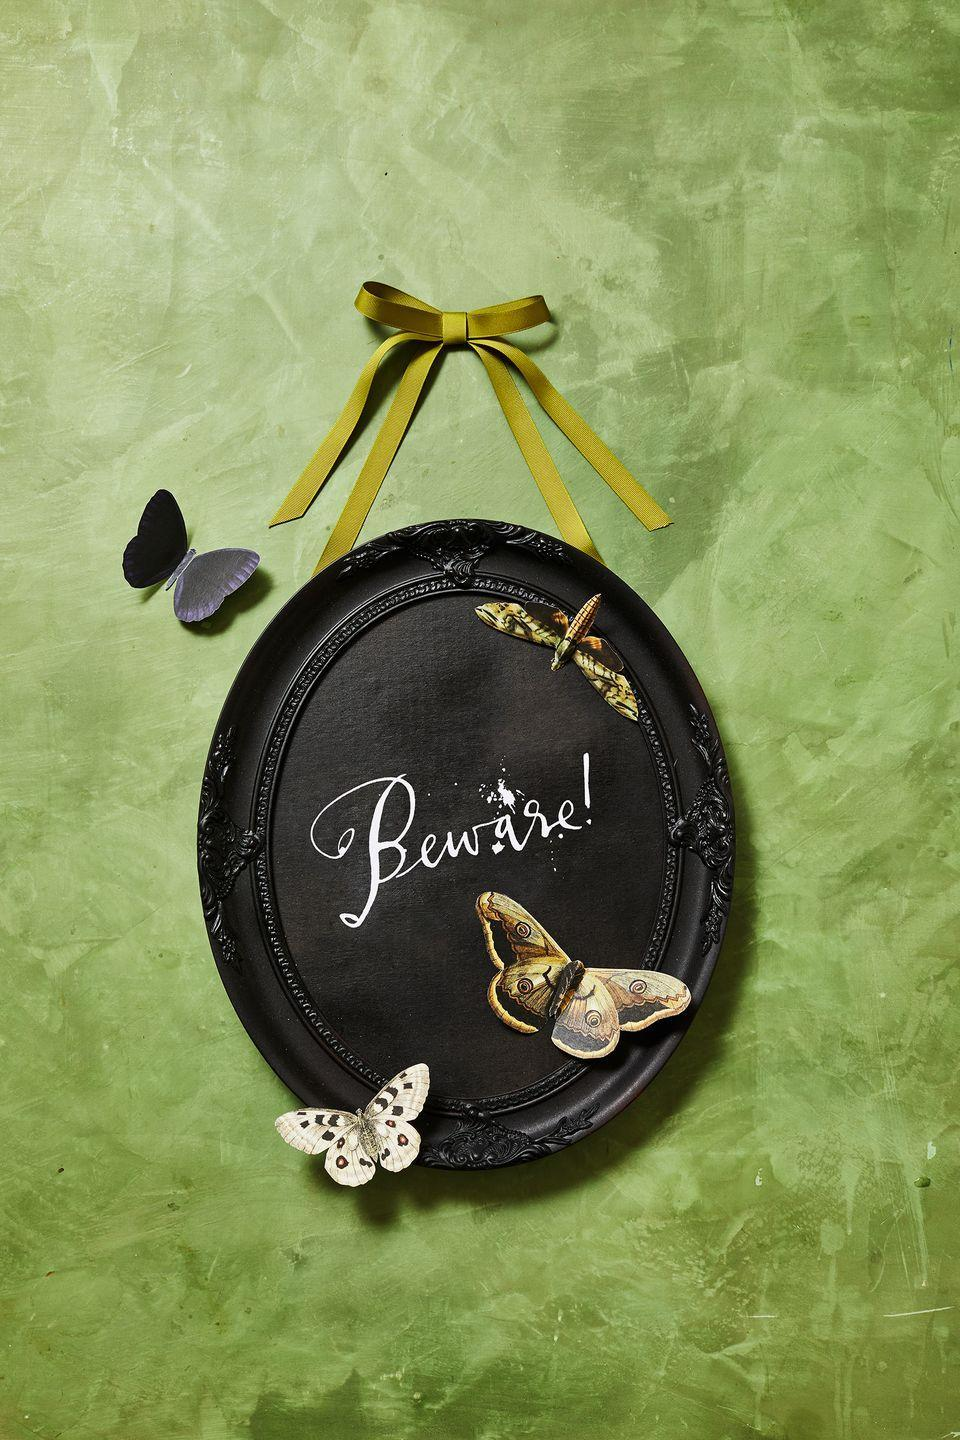 """<p>Coat a vintage frame in black spray paint and let it dry. Print butterfly images and Halloween-appropriate calligraphy art (think """"Beware!"""") on card stock. Cut them out and place them on your frame. Use ribbon to hang your new creation.</p><p><a class=""""link rapid-noclick-resp"""" href=""""https://www.goodhousekeeping.com/holidays/halloween-ideas/a33564450/gh-halloween-artwork-calligraphy-templates/"""" rel=""""nofollow noopener"""" target=""""_blank"""" data-ylk=""""slk:GET TEMPLATES"""">GET TEMPLATES </a></p>"""